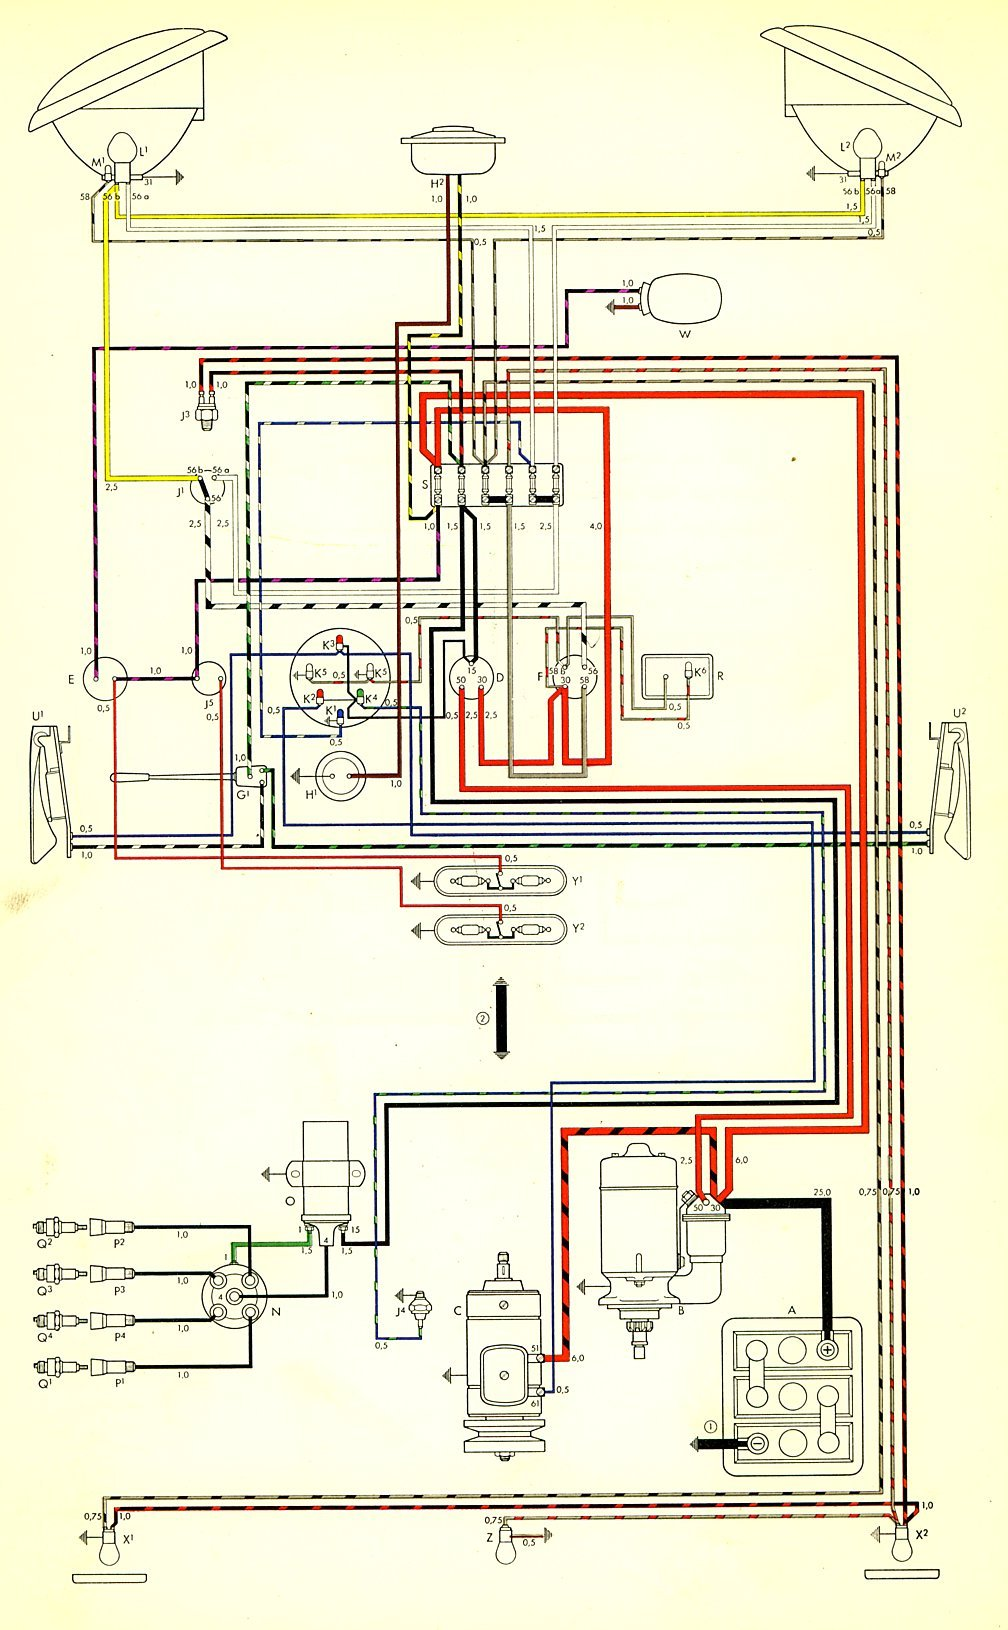 65 vw wiring diagram 65 printable wiring diagram database 1965 bus wiring diagram 1965 home wiring diagrams source